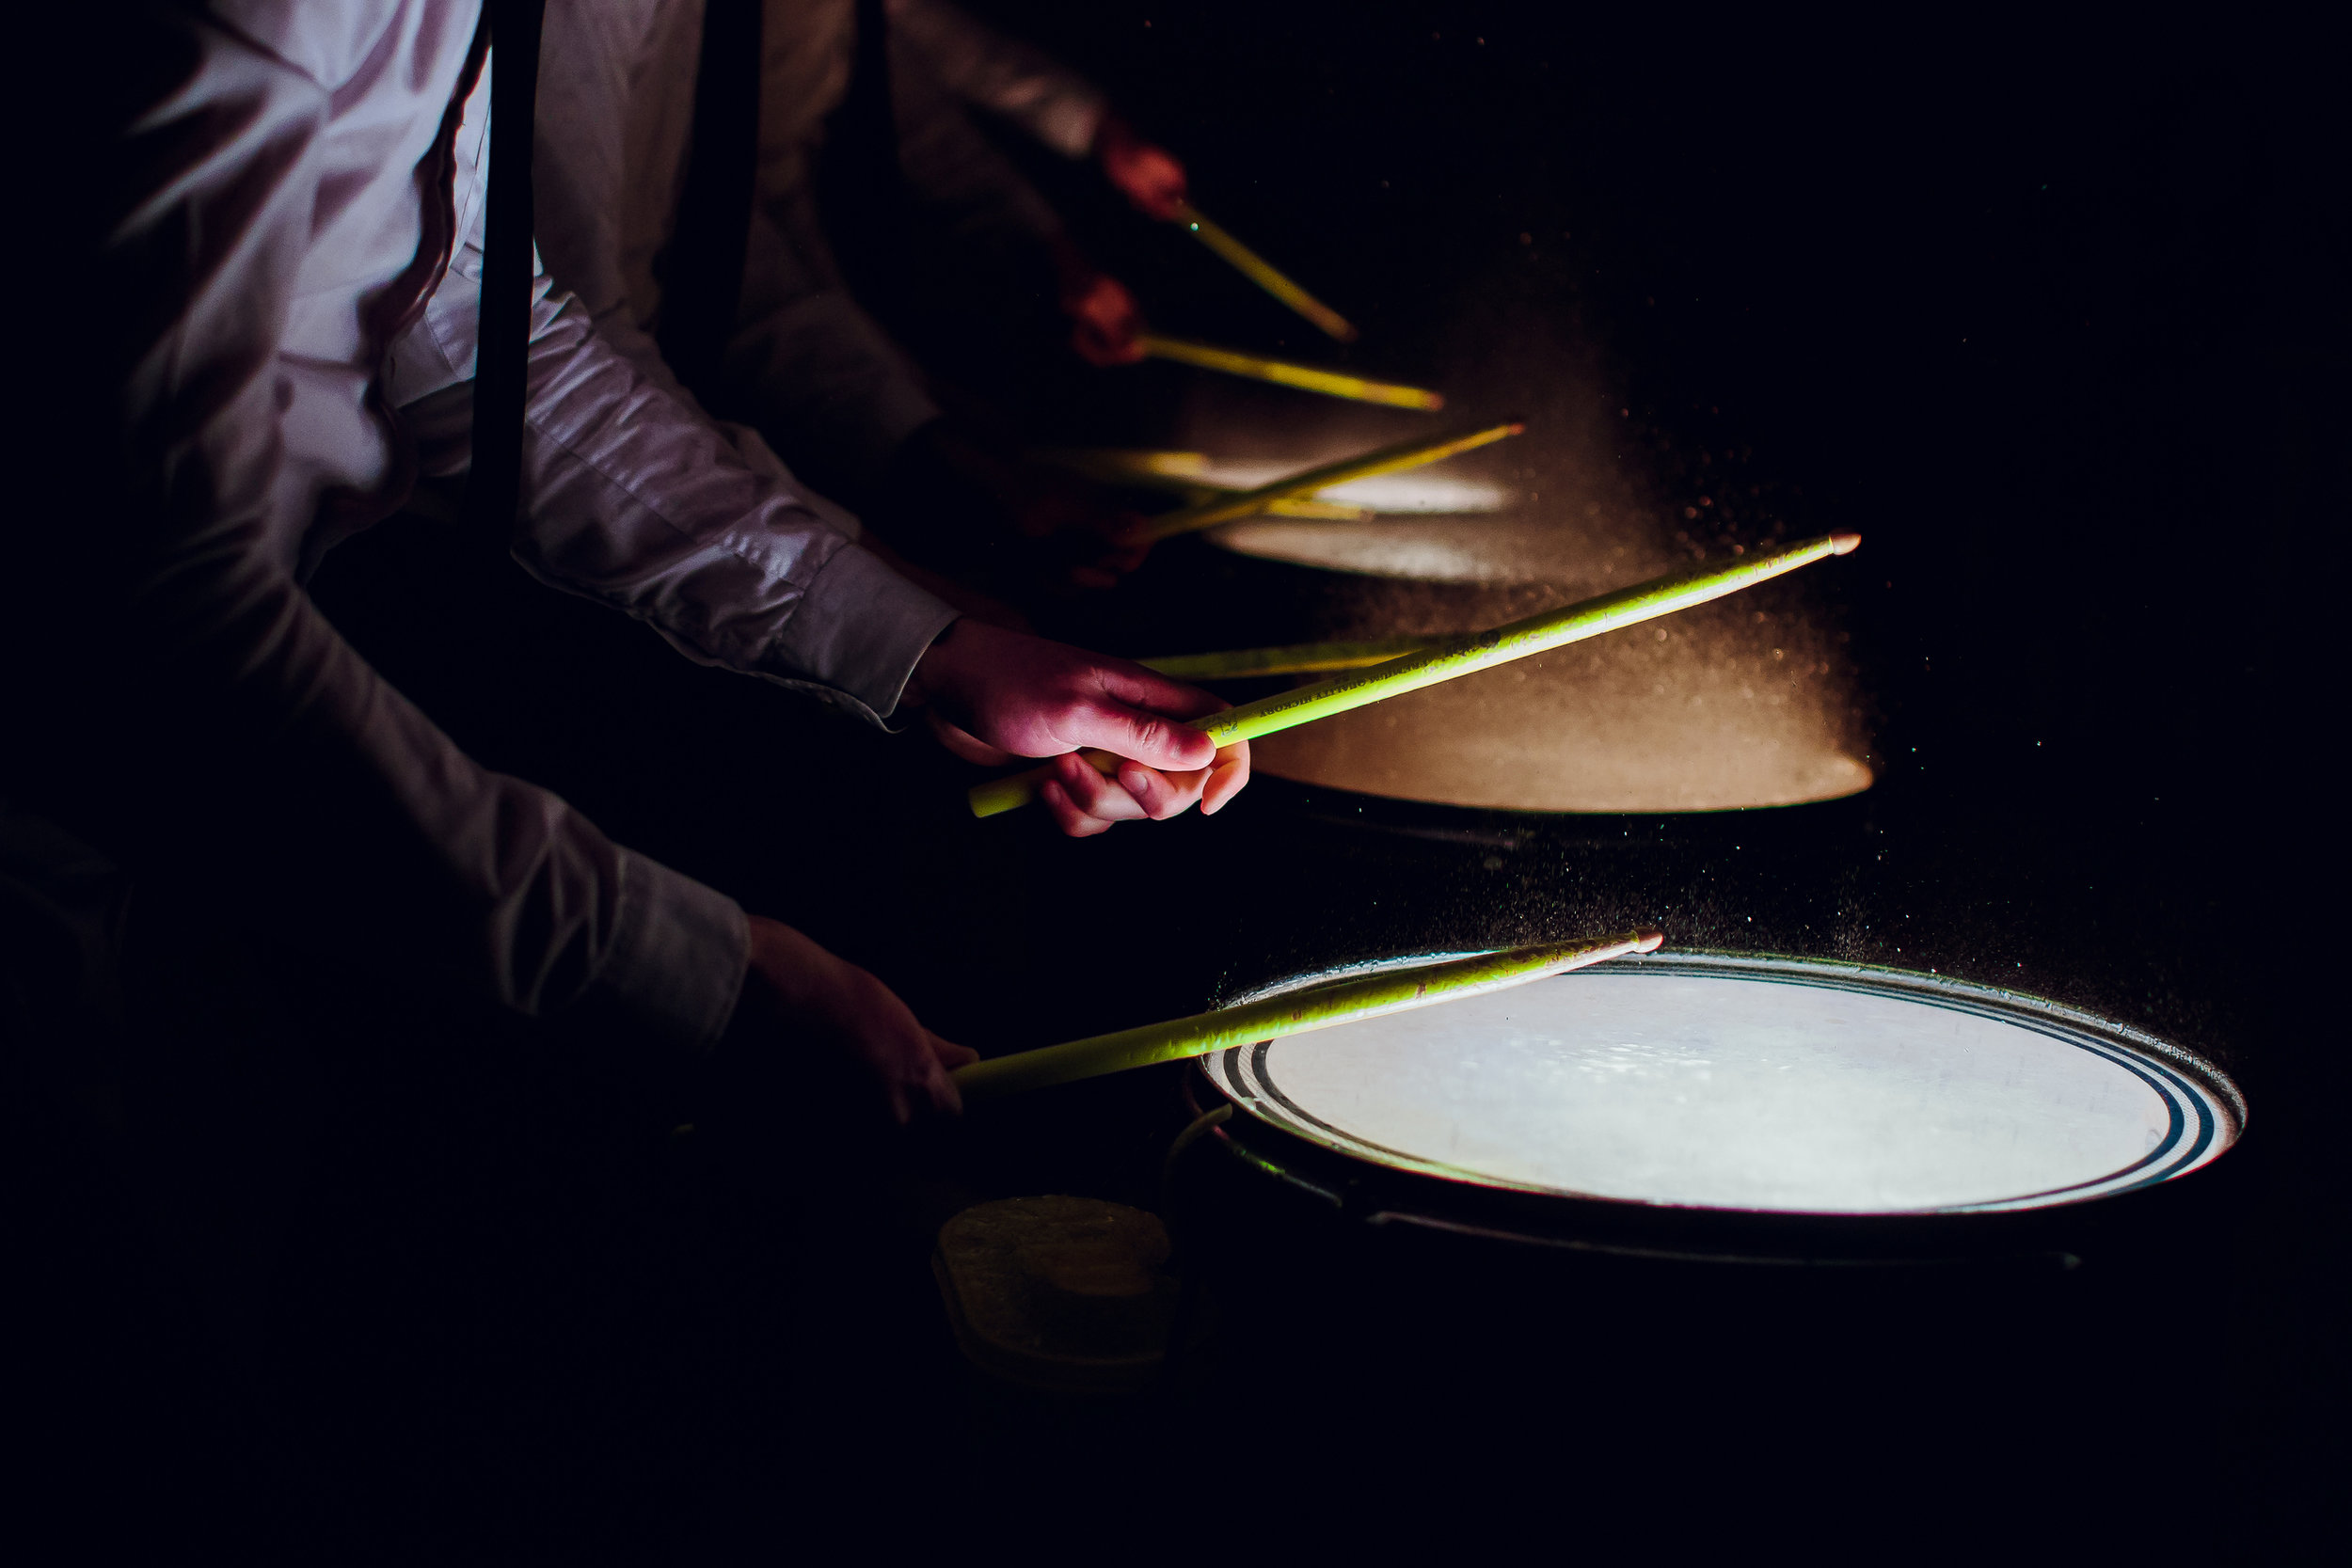 CARDIO DRUMMING - Use the power of music and rythm to release tension and sweat.